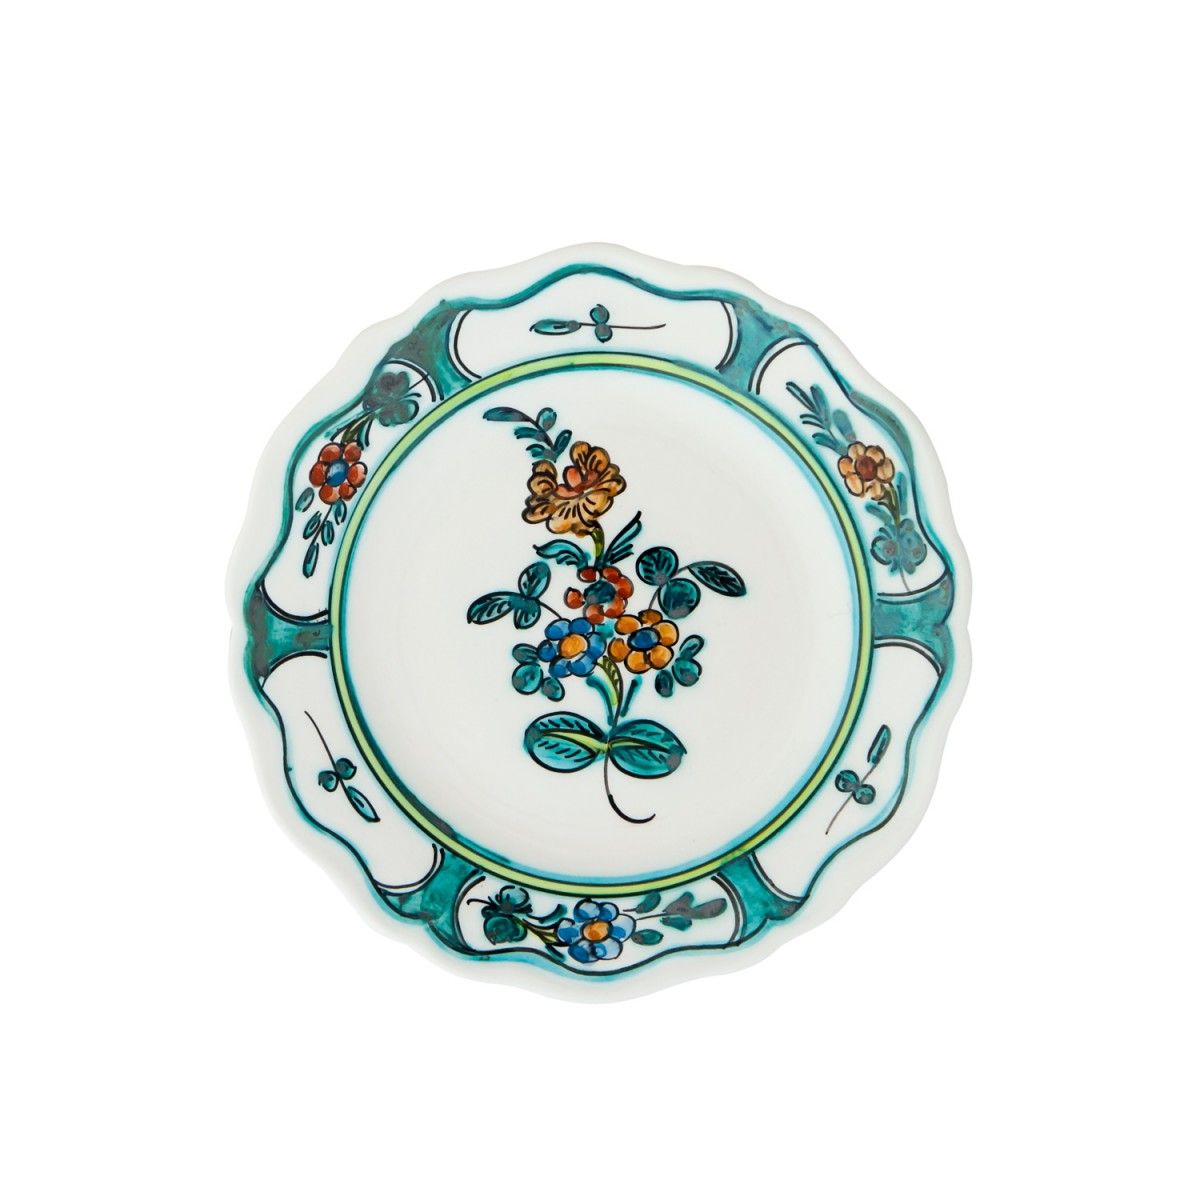 Skyriana-Hand_Painted_Ceramic_Fruit_and_Decorative_Plate-Flower_II-1